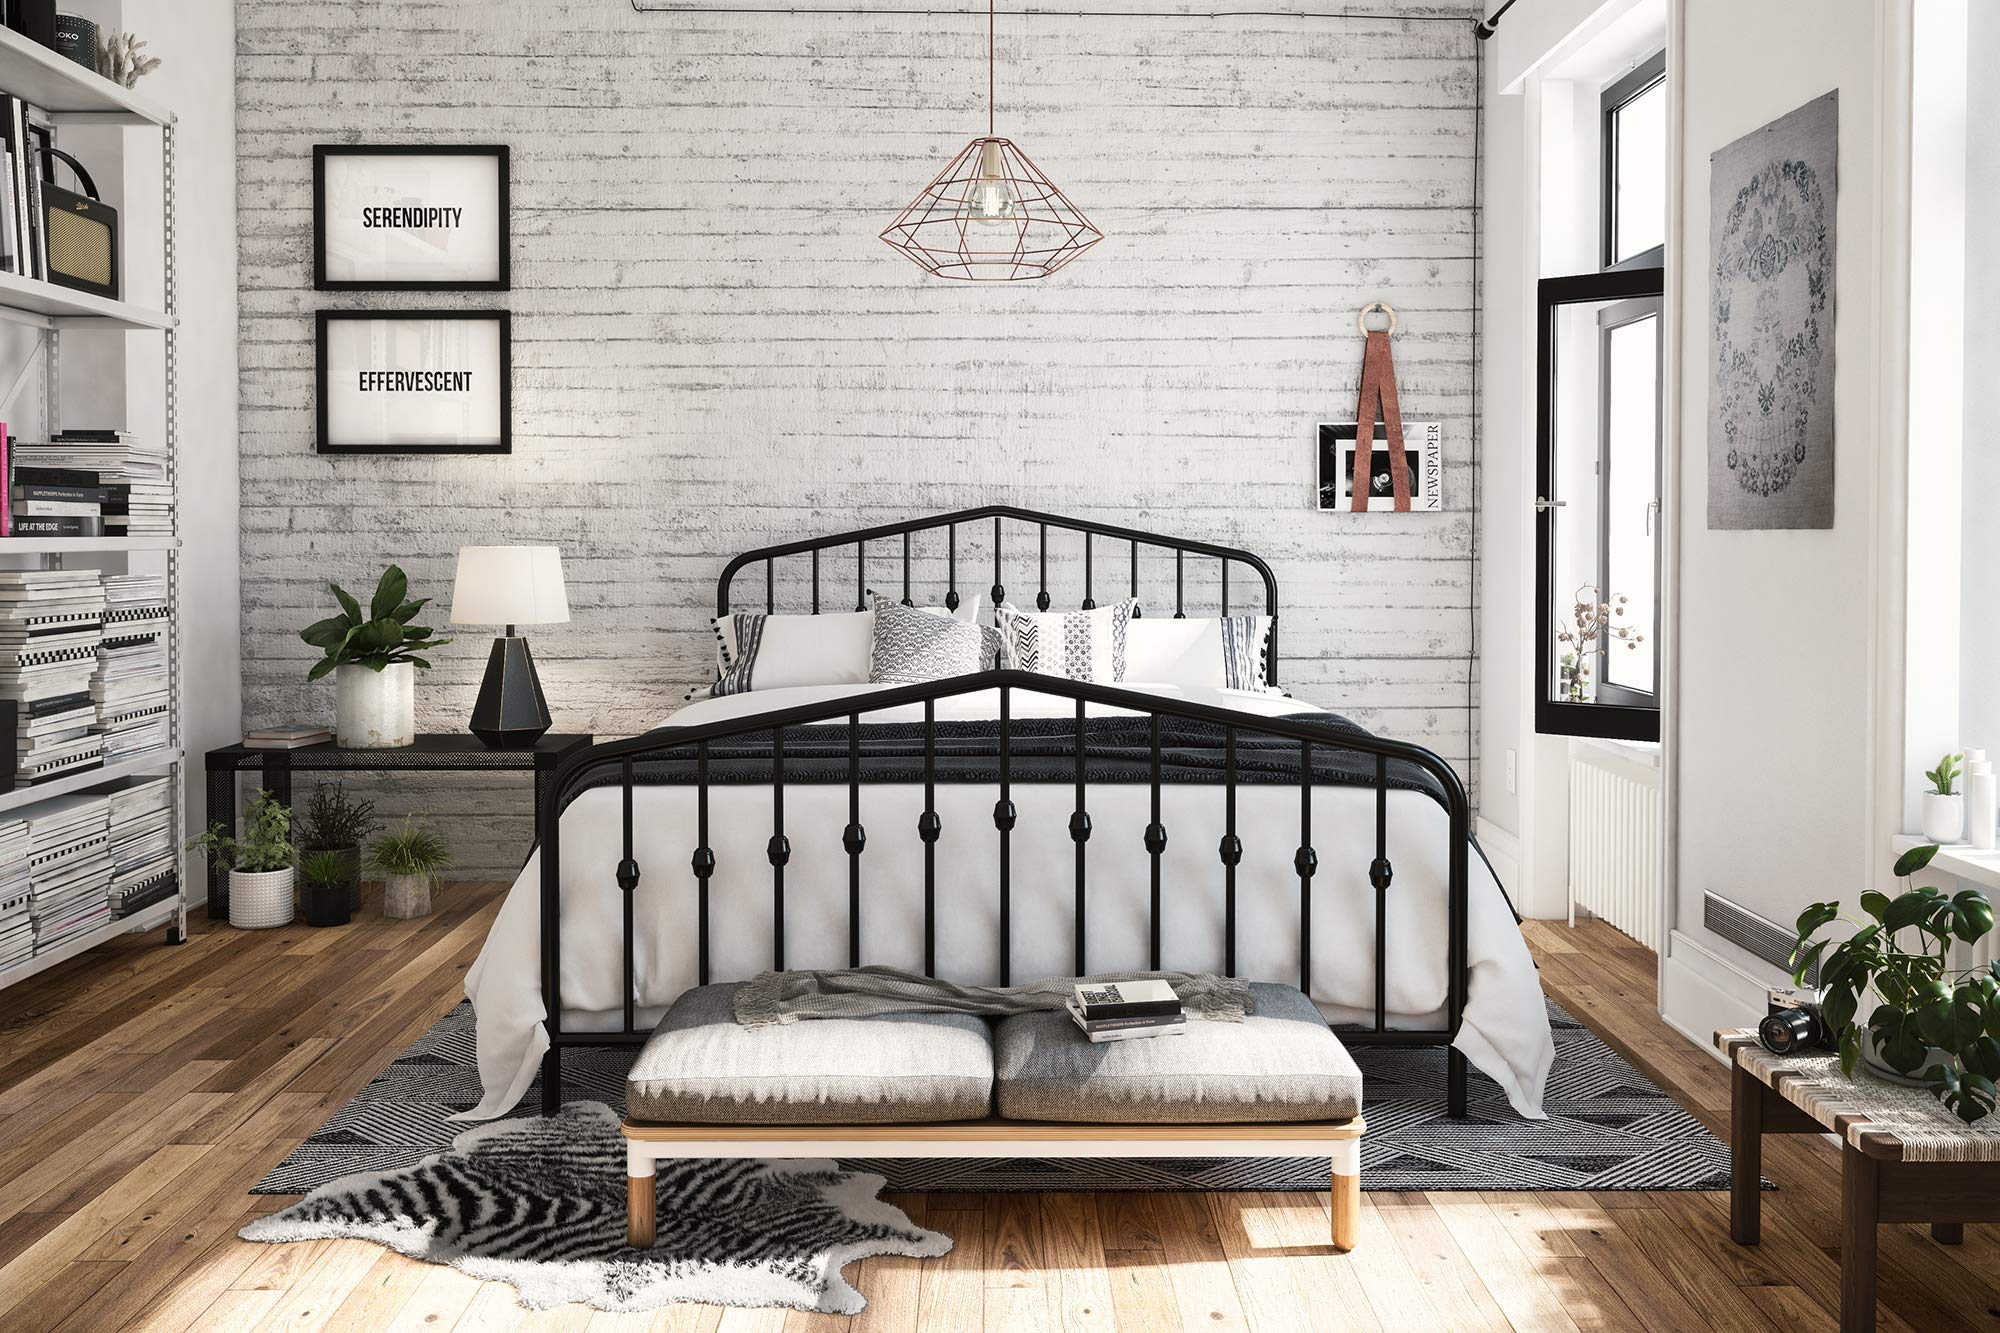 Novogratz 4044039N Bushwick Metal Bed, Queen, Black by Novogratz